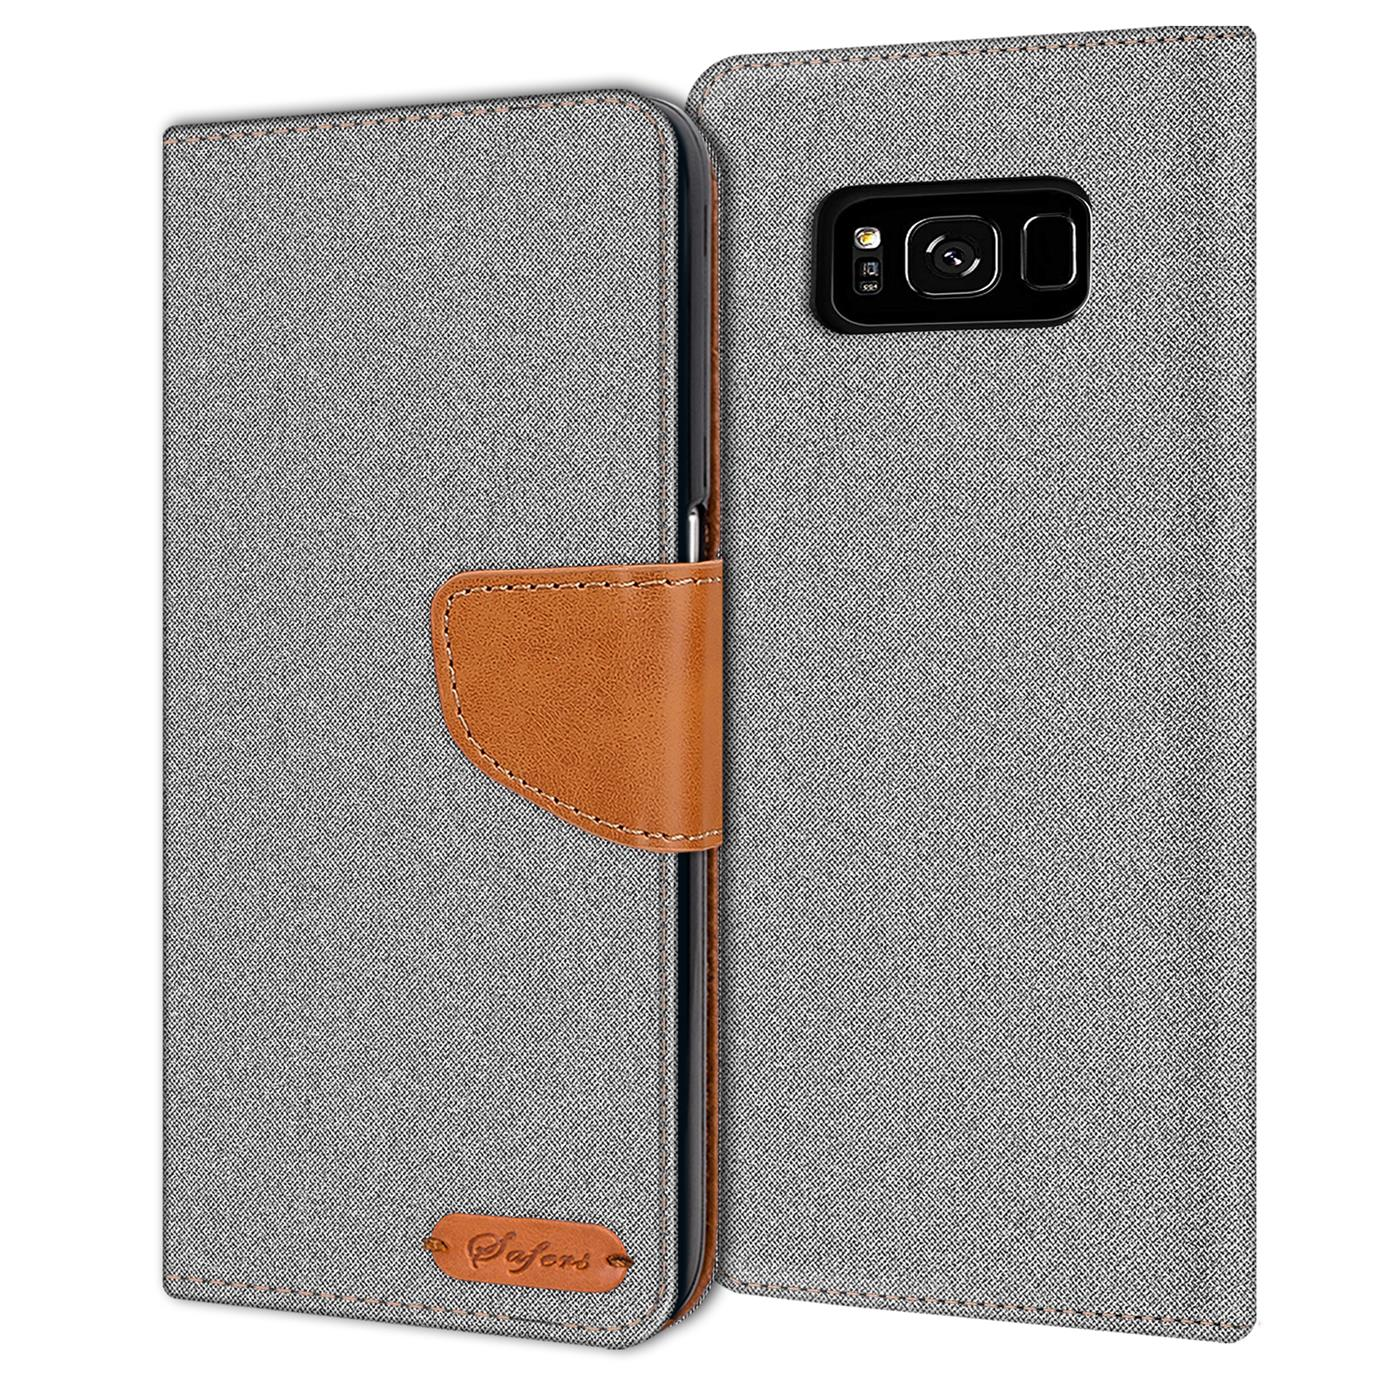 Samsung-Galaxy-S8-Plus-Phone-PU-Leather-Magnetic-Flip-Case-Wallet-Denim-Cover thumbnail 10